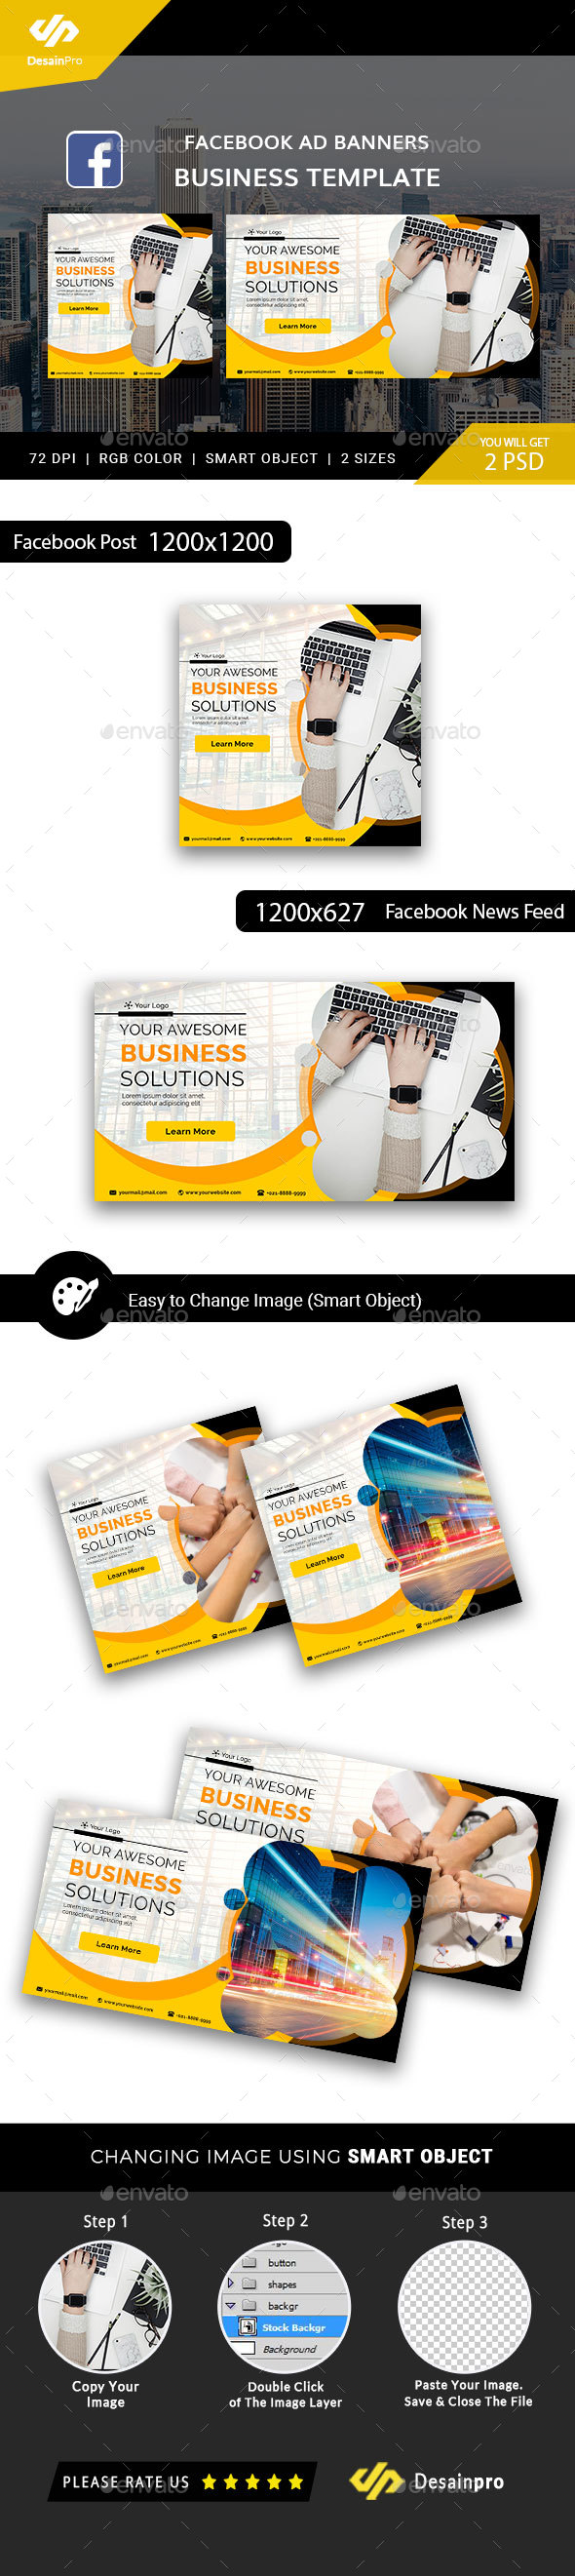 Business Solutions Facebook Ad Banners - AR - Social Media Web Elements